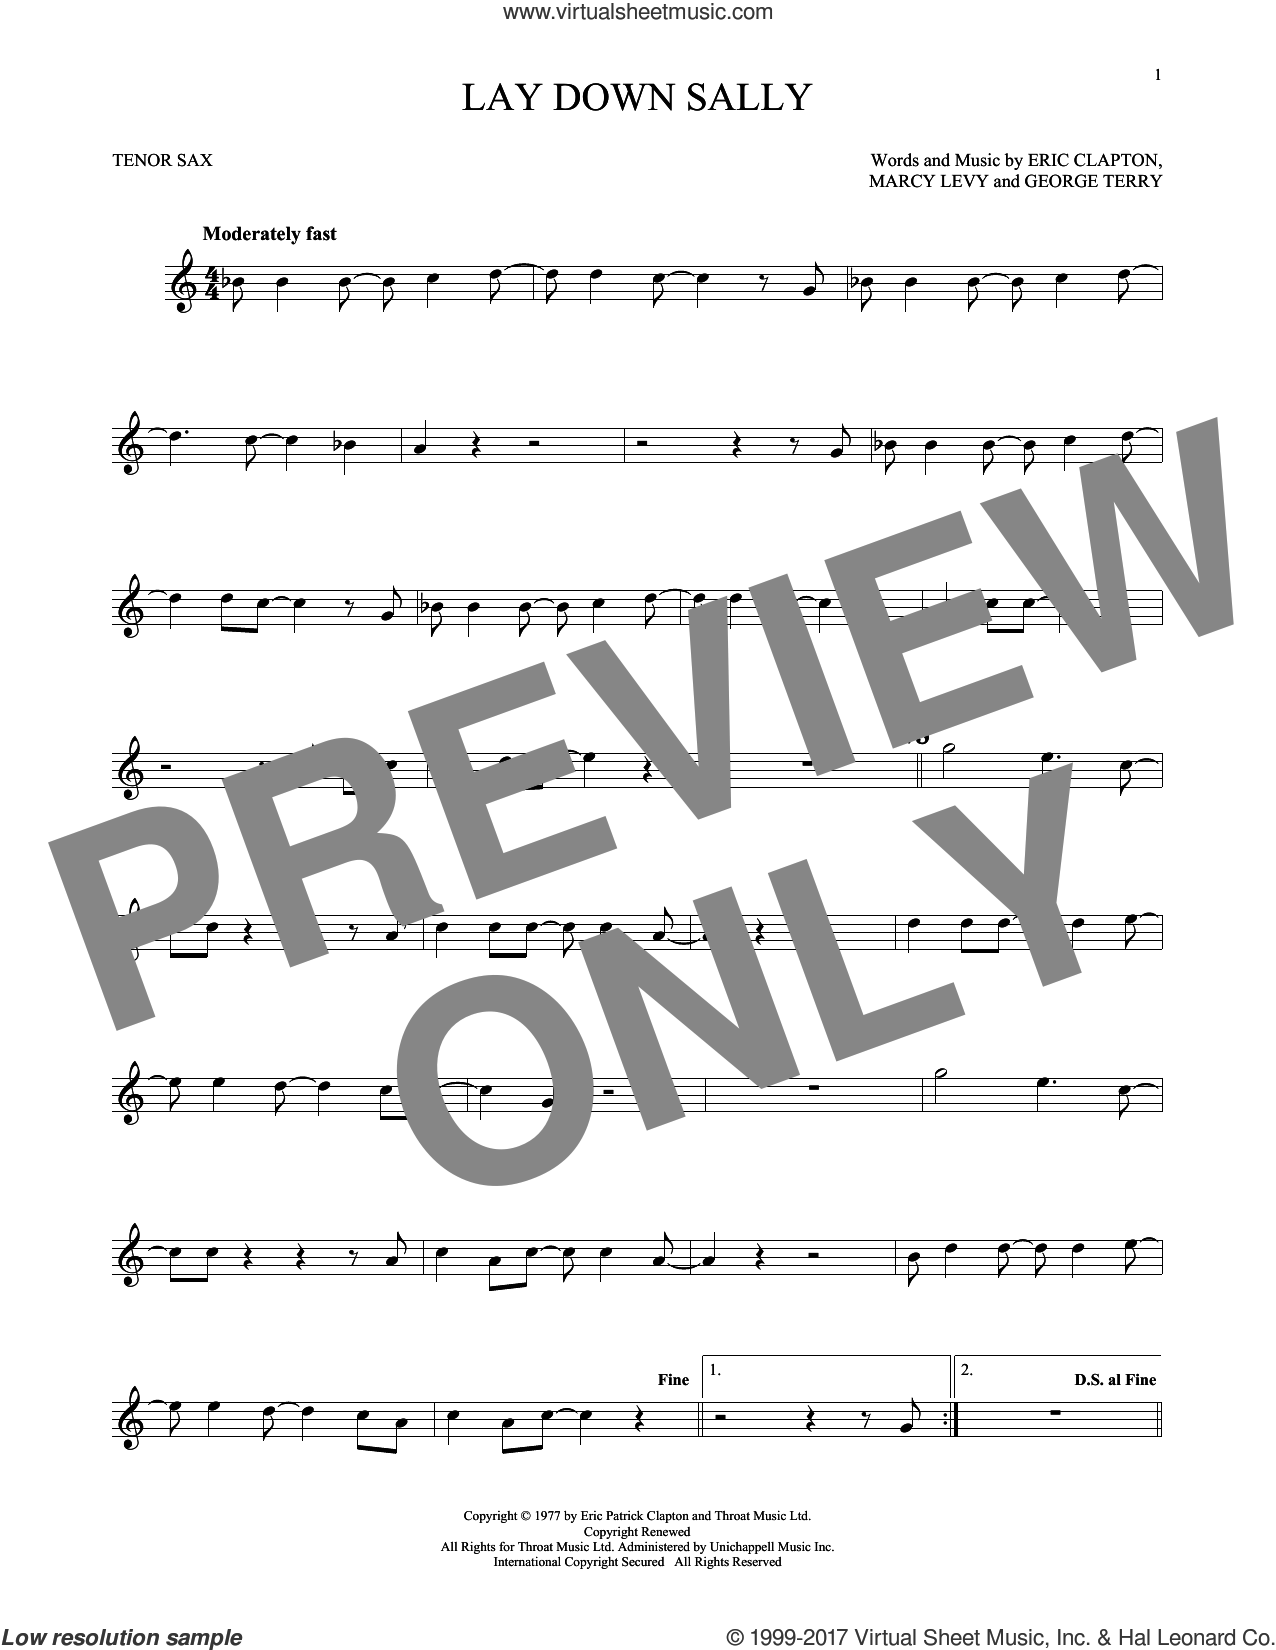 Lay Down Sally sheet music for tenor saxophone solo by Eric Clapton, George Terry and Marcy Levy, intermediate skill level